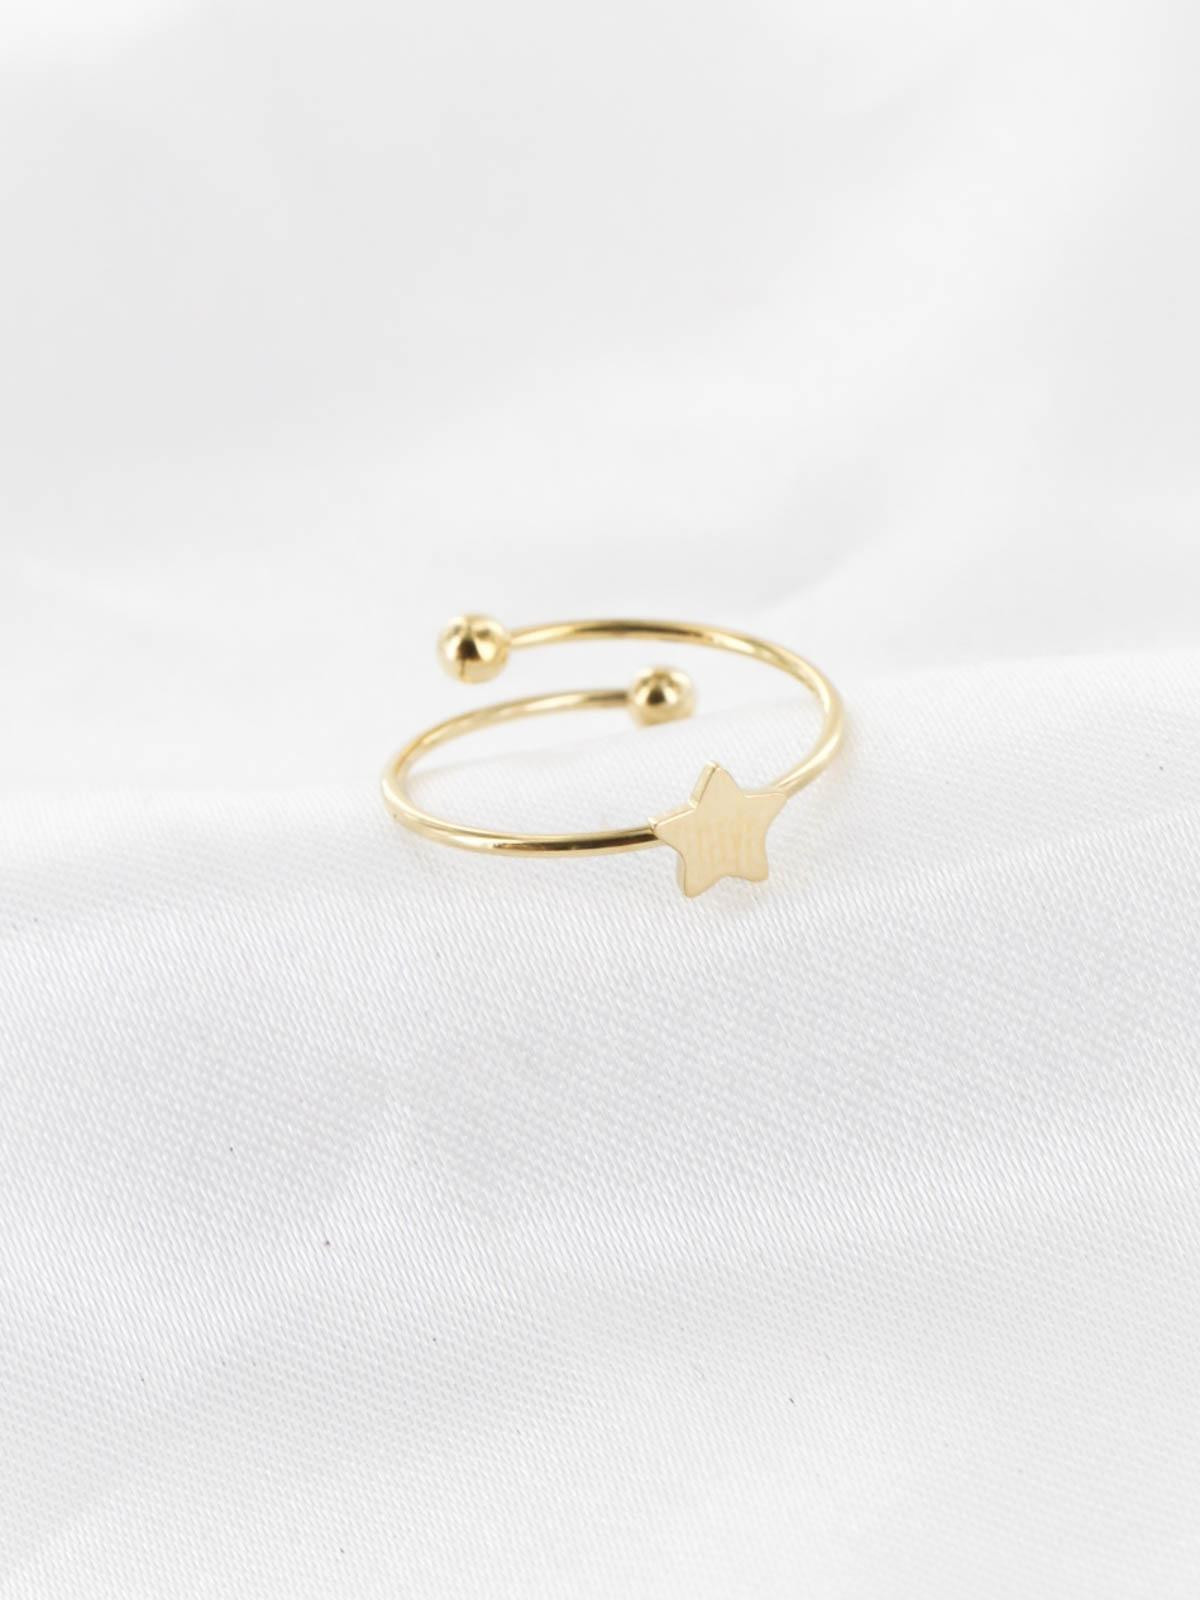 Bague Etoile Or